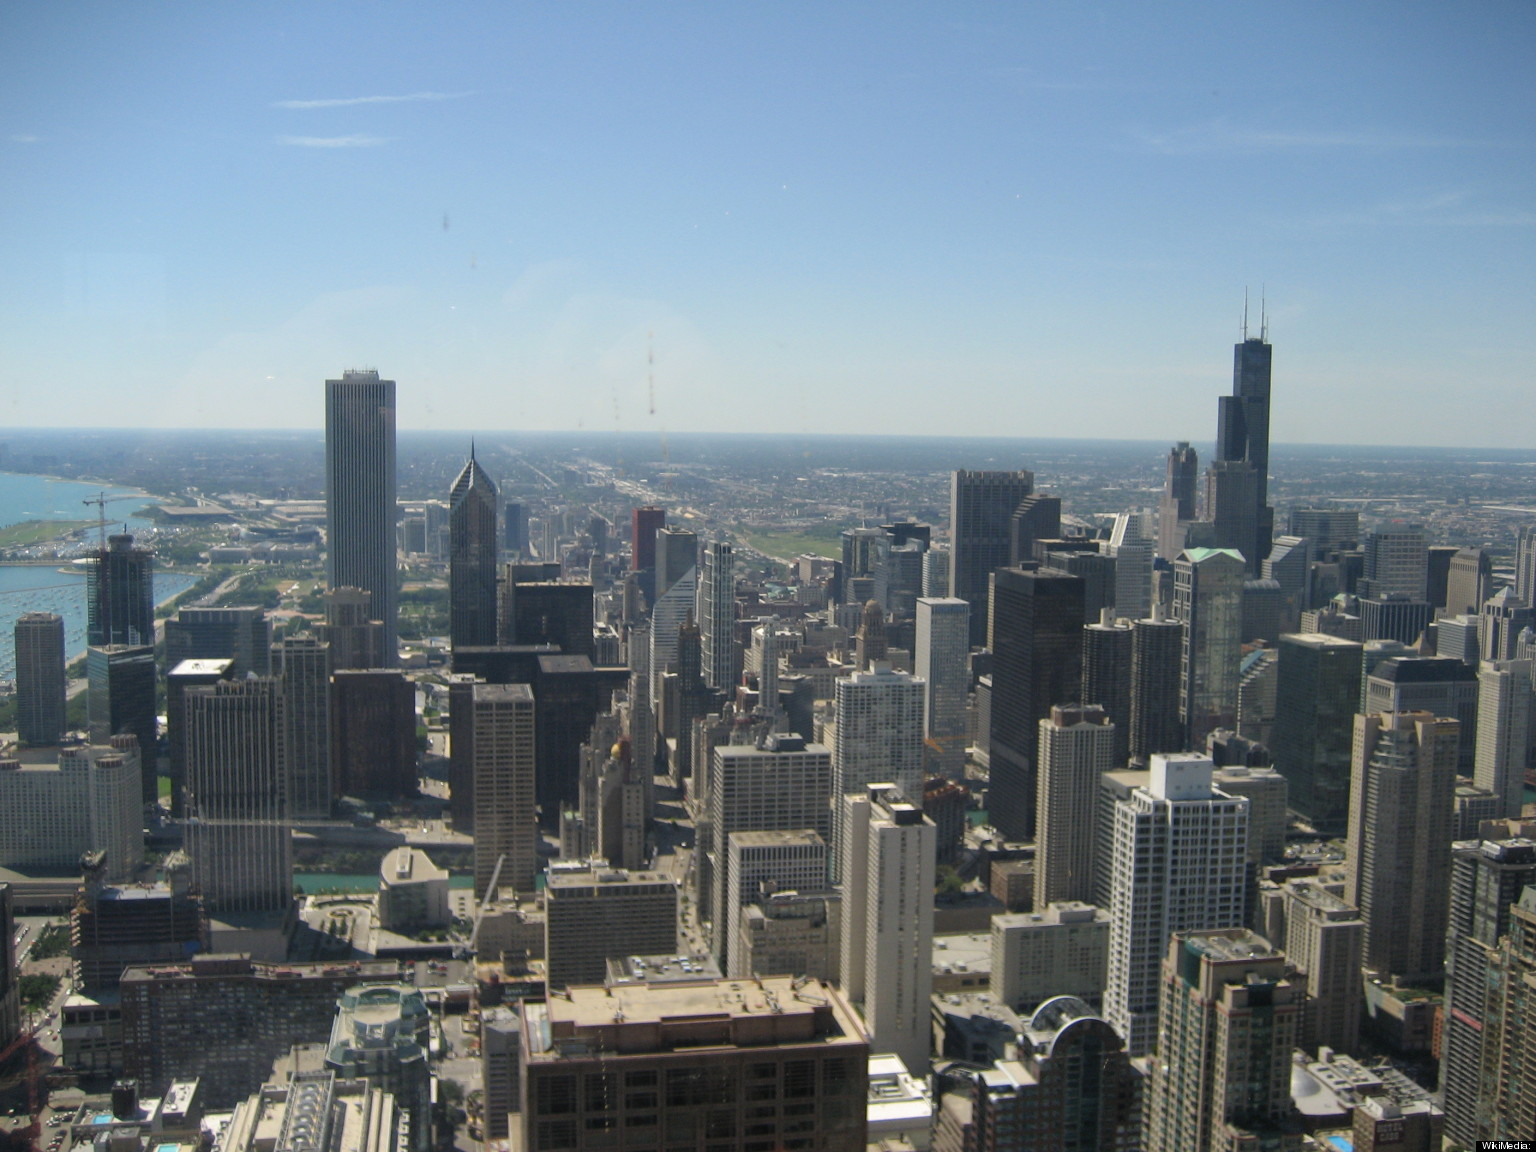 Is chicago better than new york for dating